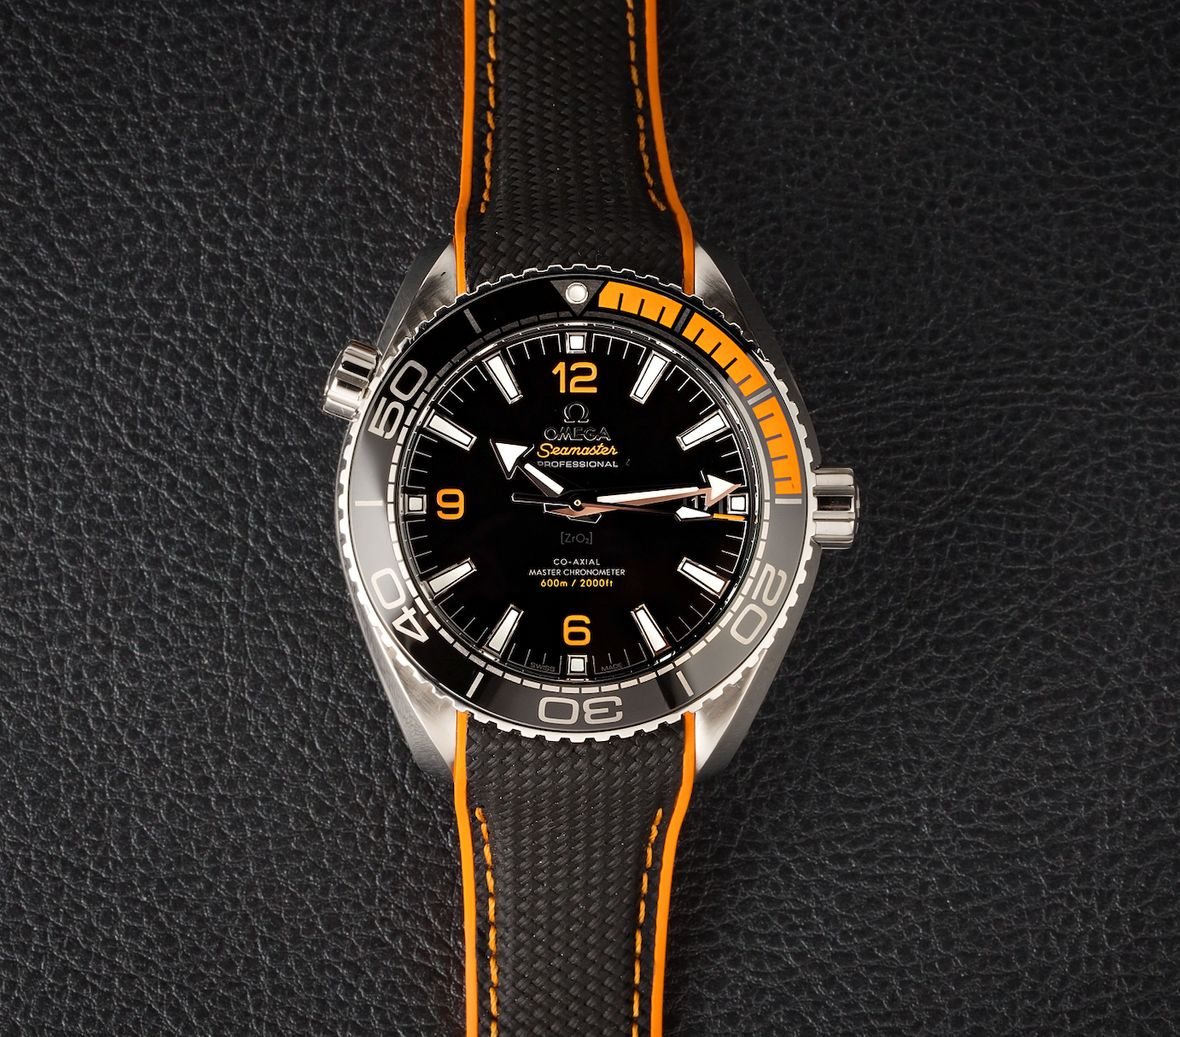 Best Omega Watches Under 5K Seamaster Planet Ocean